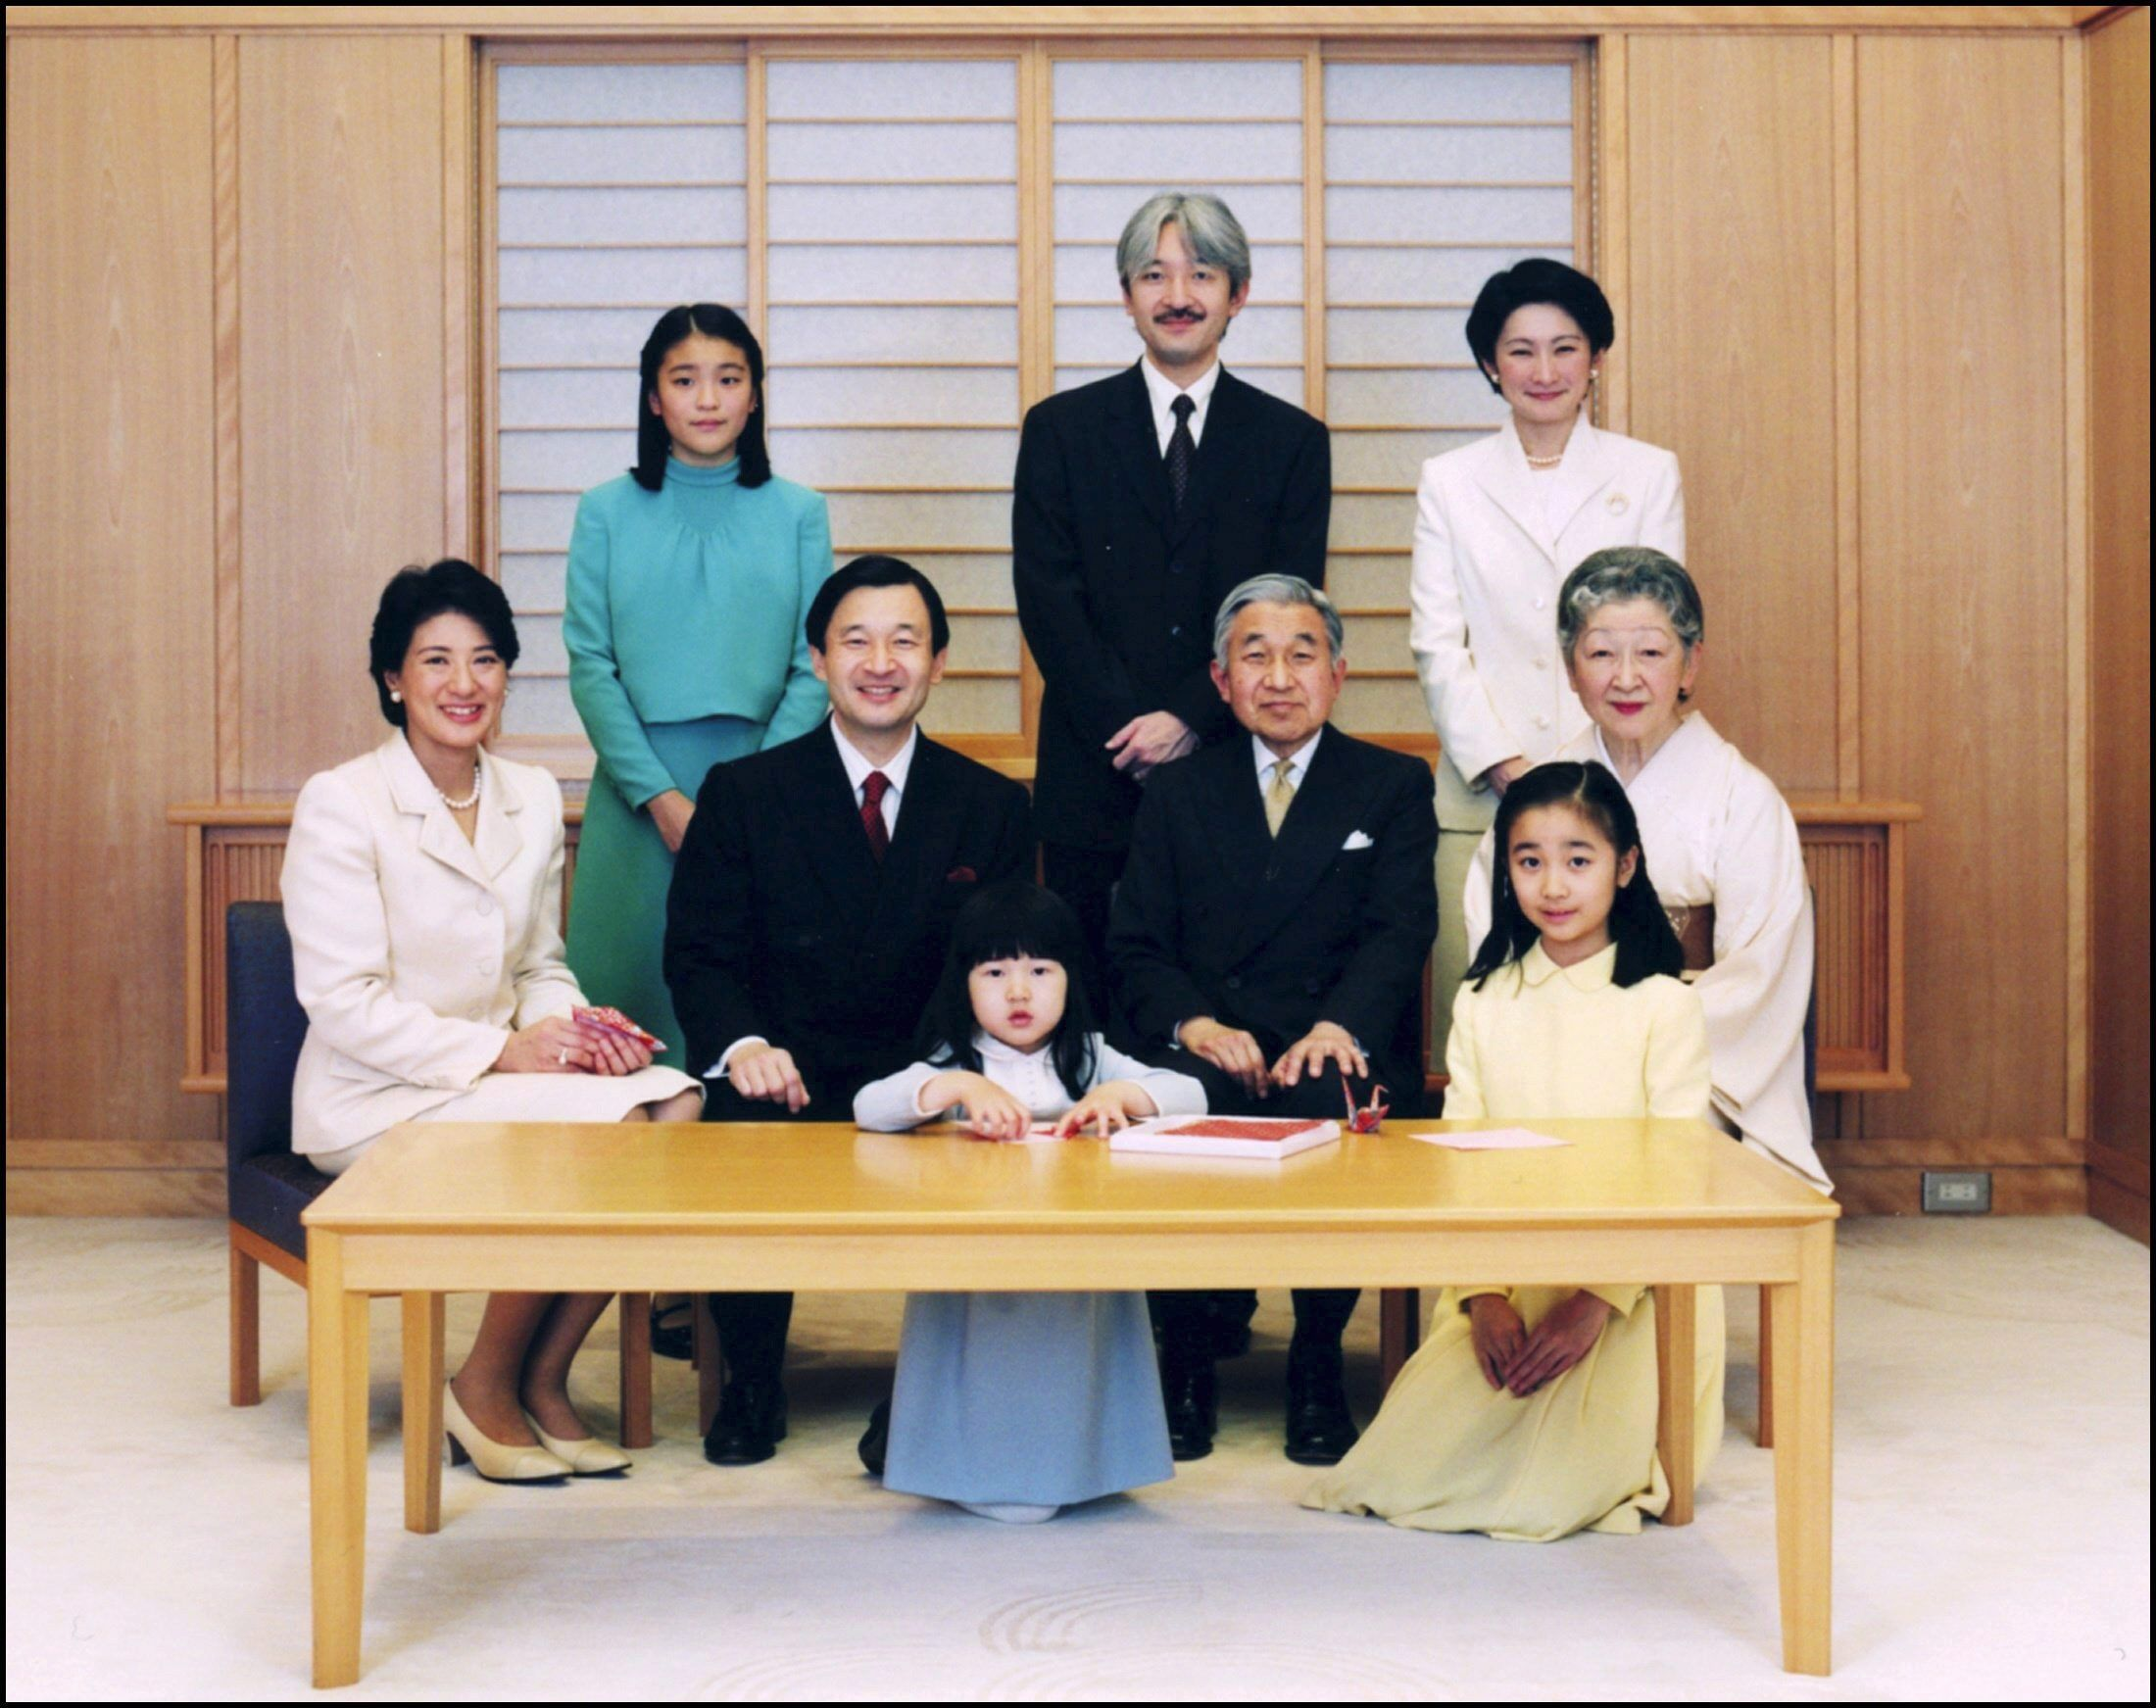 01/01/2006. Japan's Emperor Akihito, Empress Michiko and royal family pose for New Year photograph in Tokyo